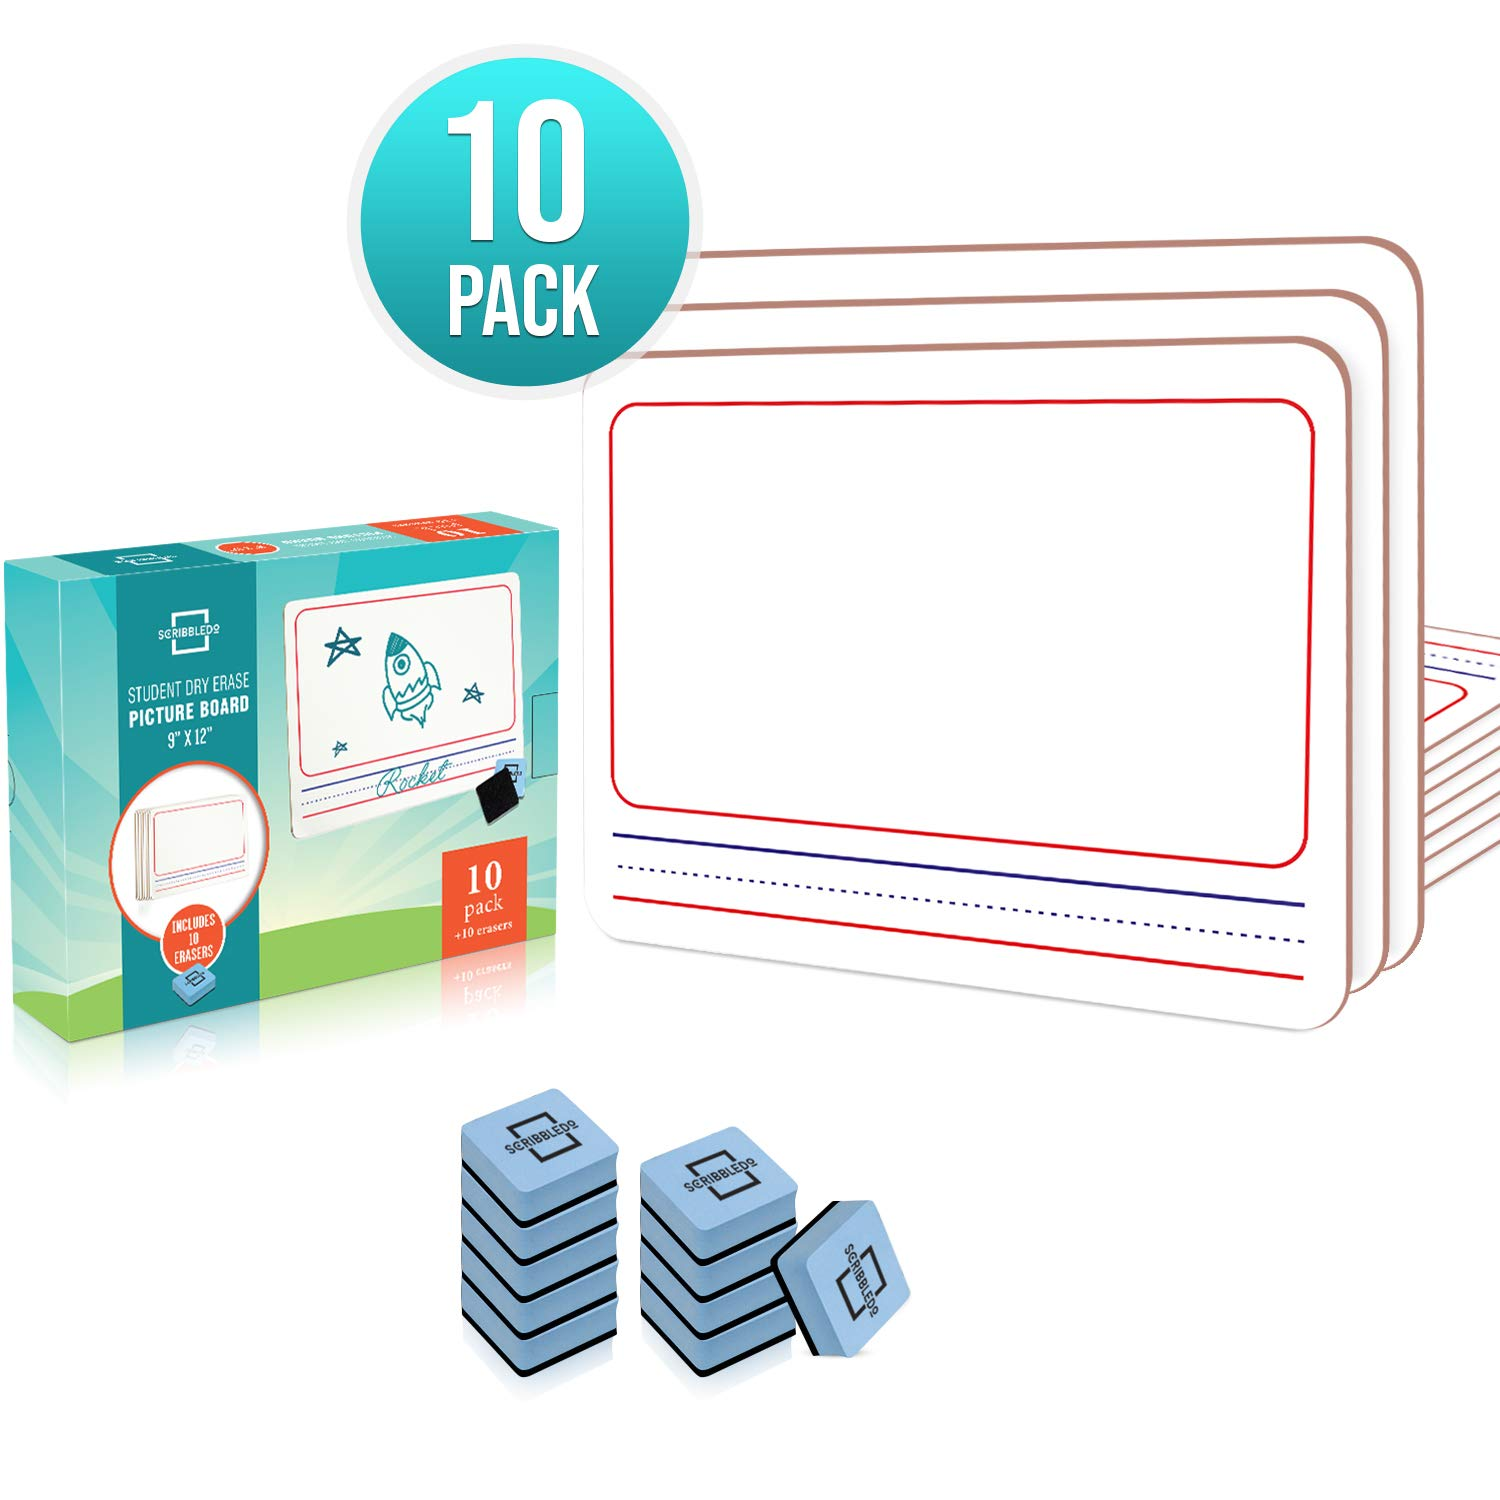 10 Pack Dry Erase Picture Story Boards for Student Drawing Lap Whiteboards, Erasers Included 9X12 inch Lined Double Sided White Boards